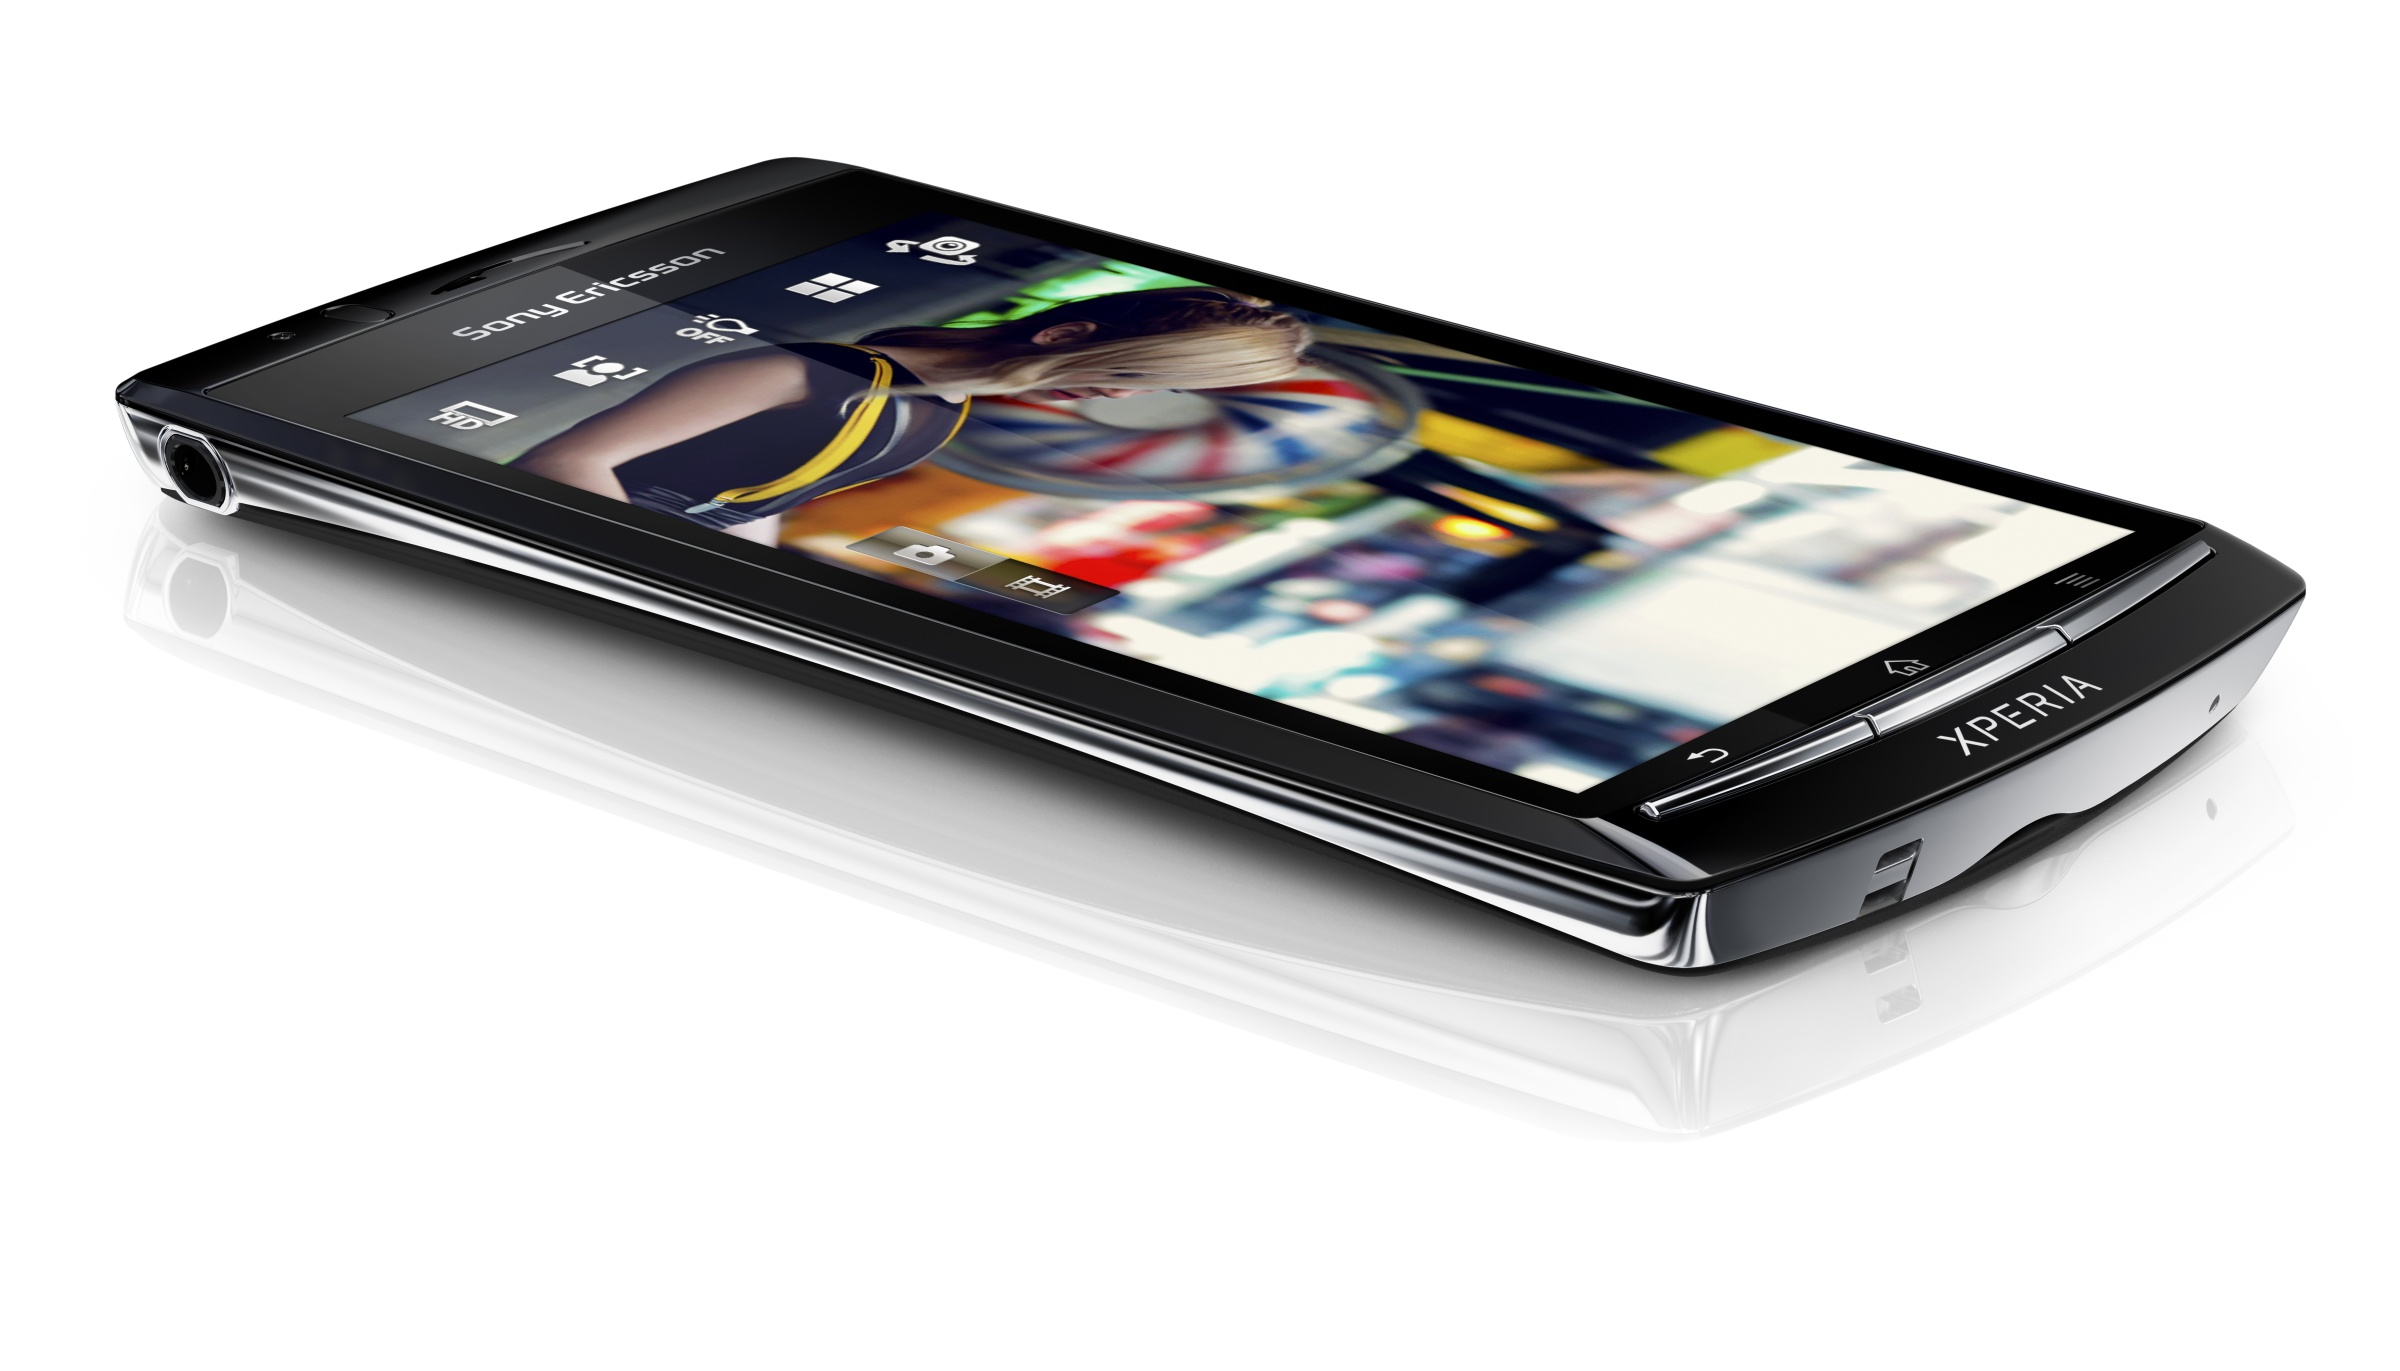 """Sony Ericsson confirms its XPERIA Arc – 4.2"""" multitouch screen, with ..."""